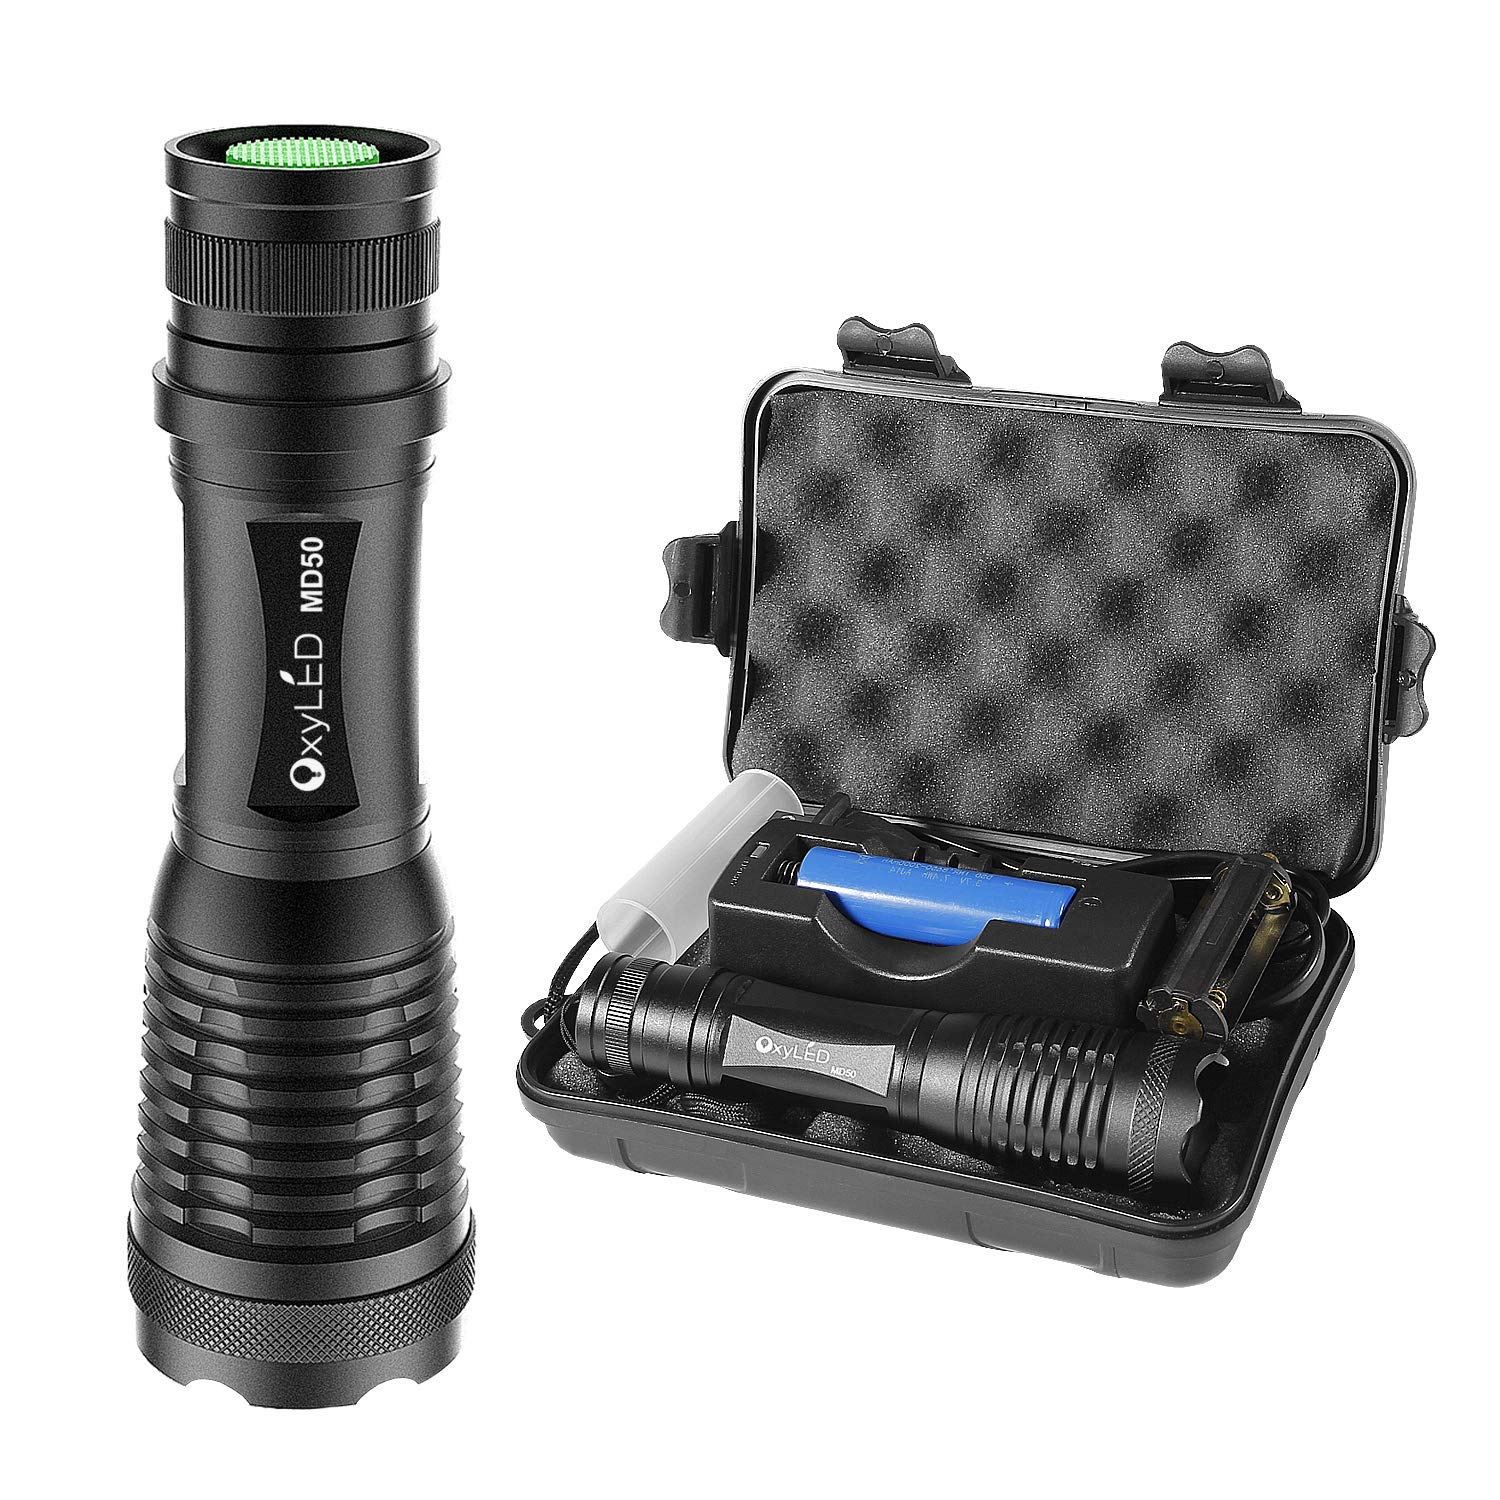 [Rechargeable] LED Tactical Flashlight, OxyLED Super Bright 900 Lumens CREE T6 LED Torch, 18650 Battery Included, IPX-6 Water Resistant, Zoomable, 5 Light Modes for Camping Hiking and Emergency Use